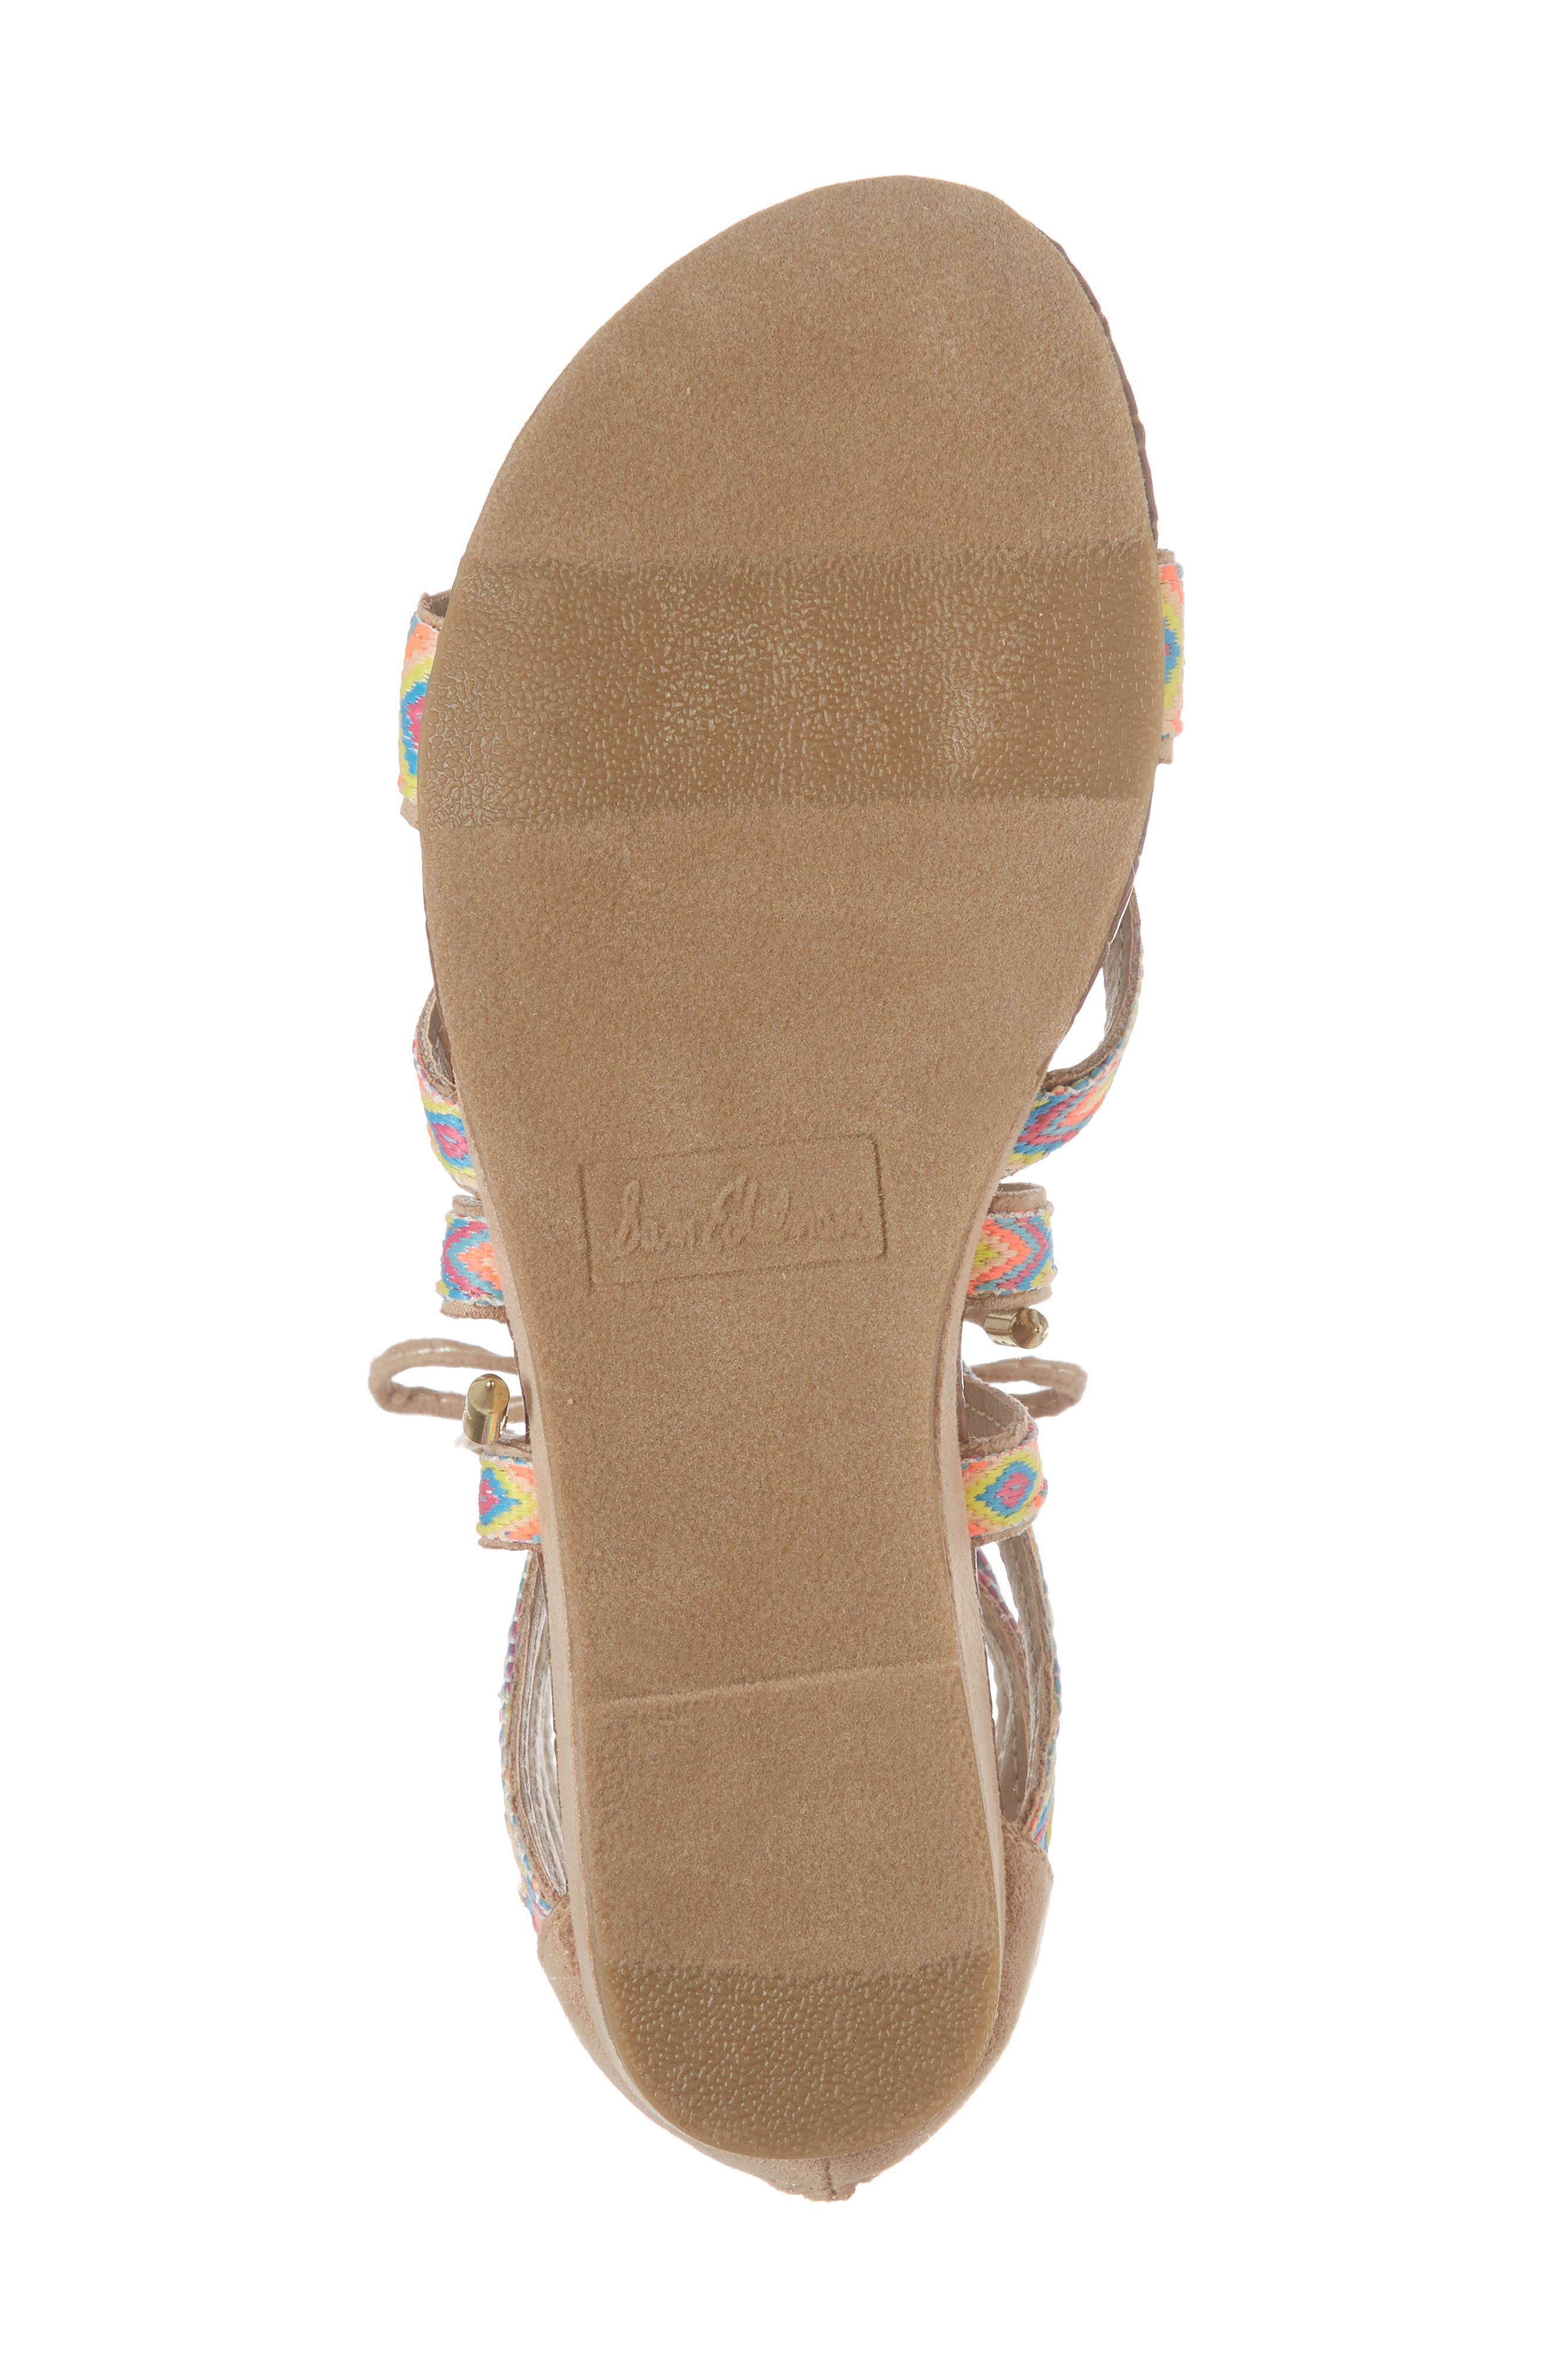 Danica Friendship Ghillie Wedge Sandal,                             Alternate thumbnail 6, color,                             Natural Faux Suede